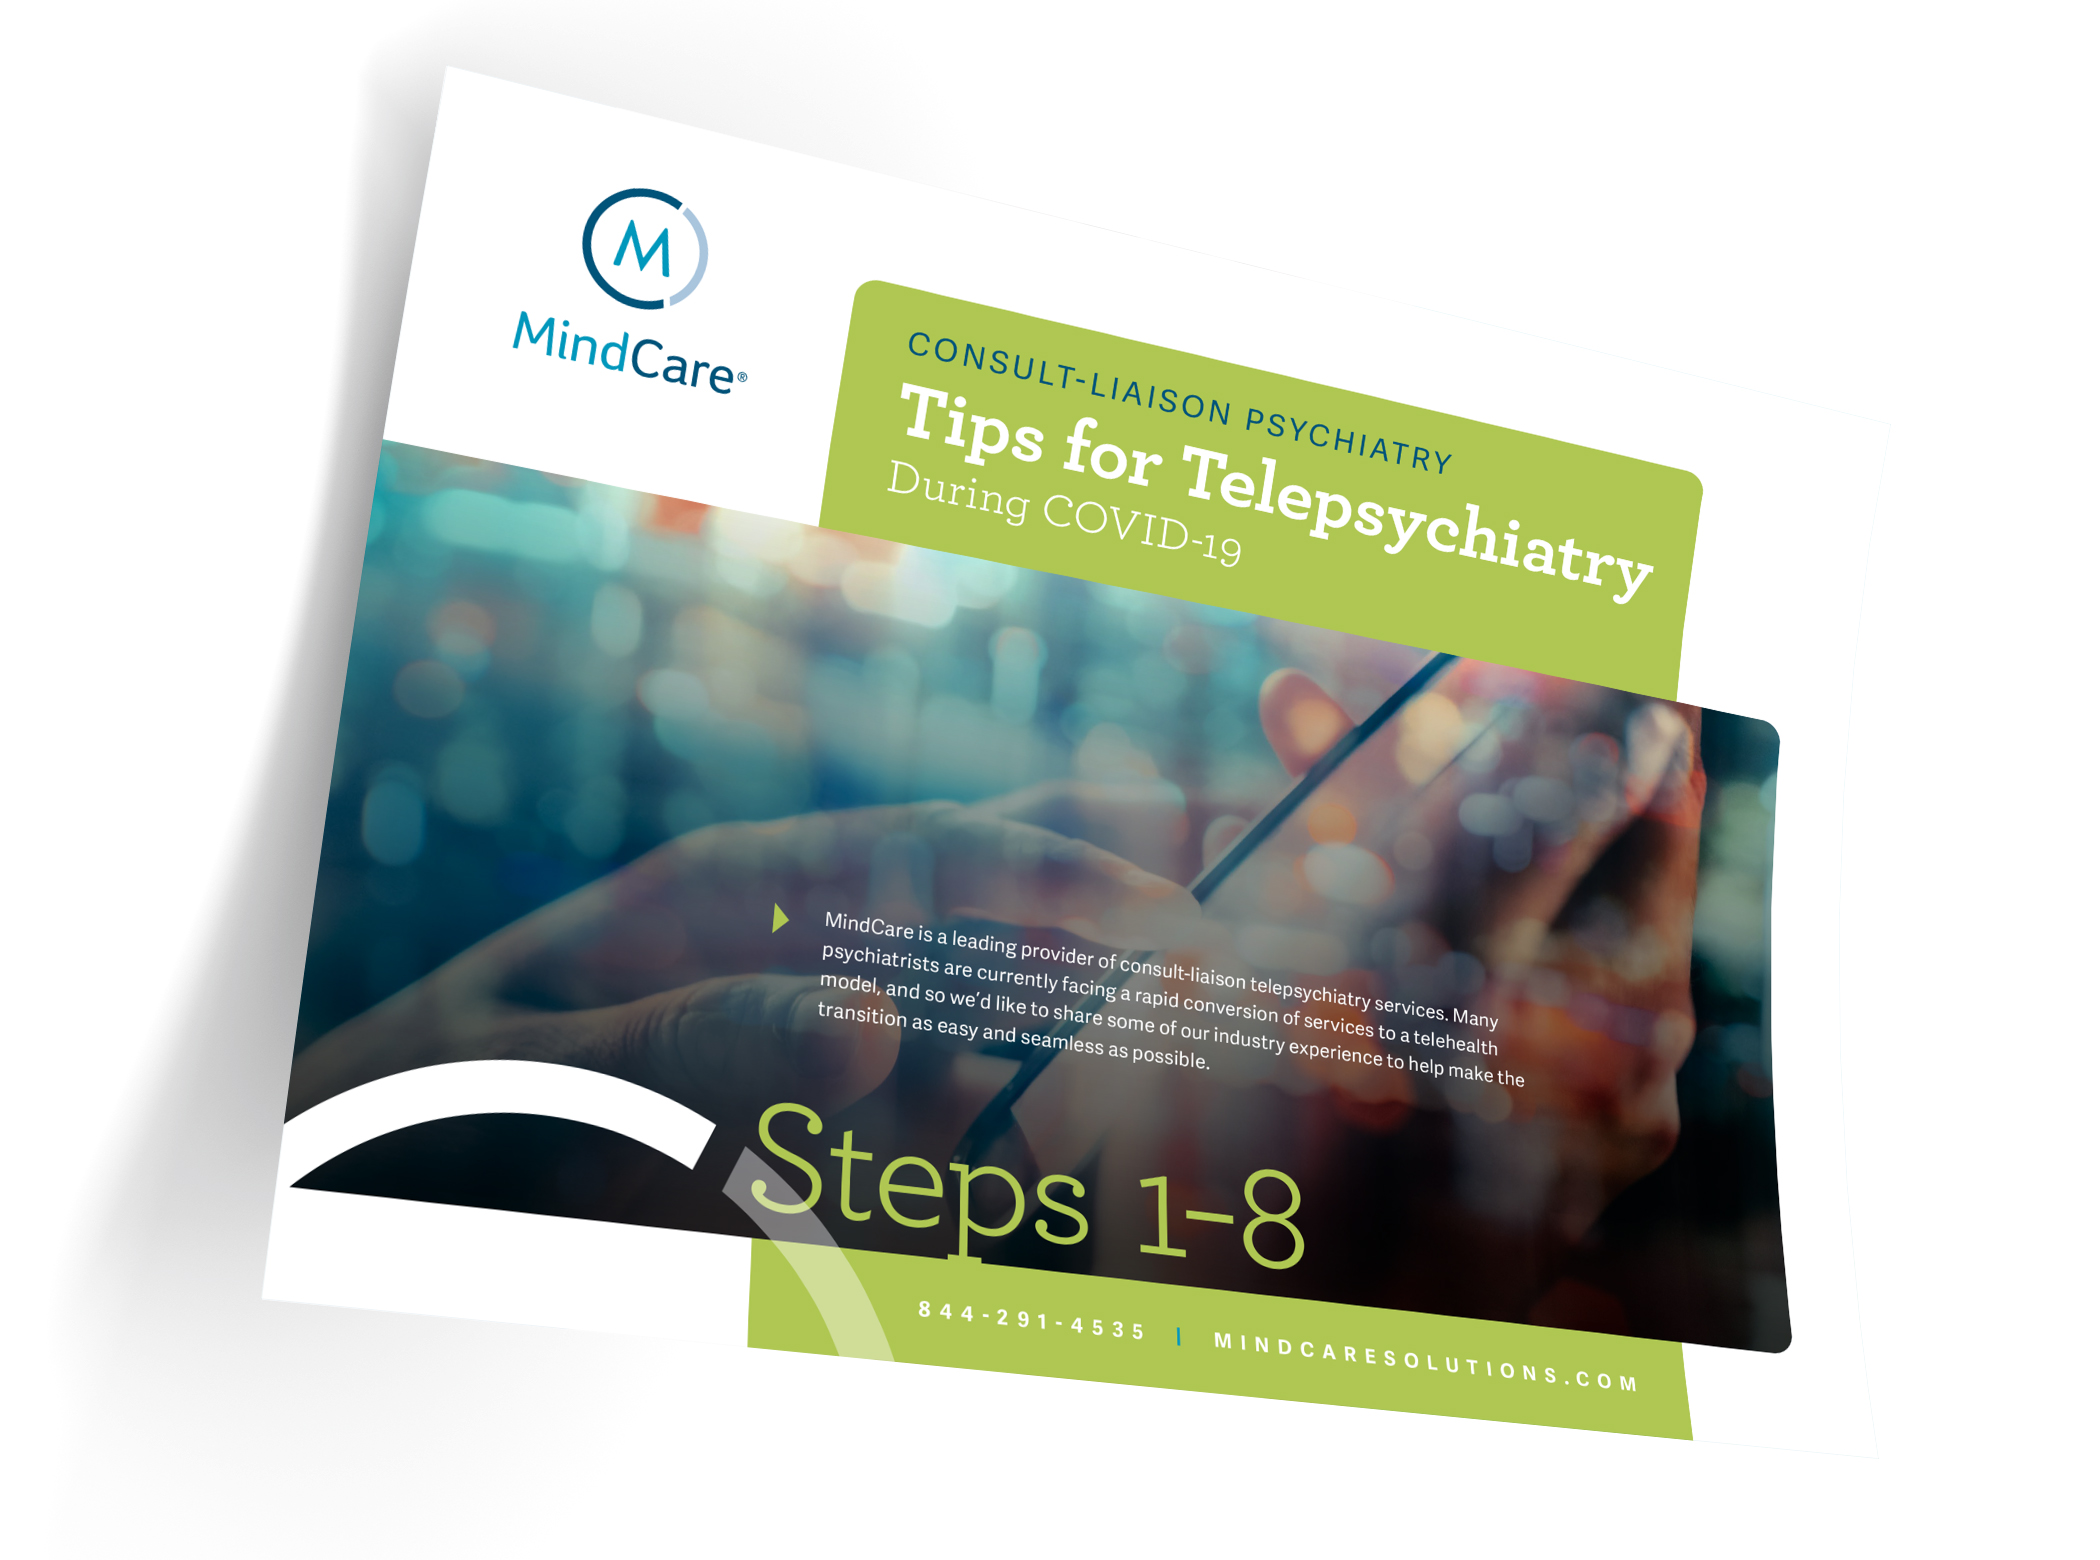 Consult-Liason Psychiatry Tips for Telepsychiatry During COVID-19